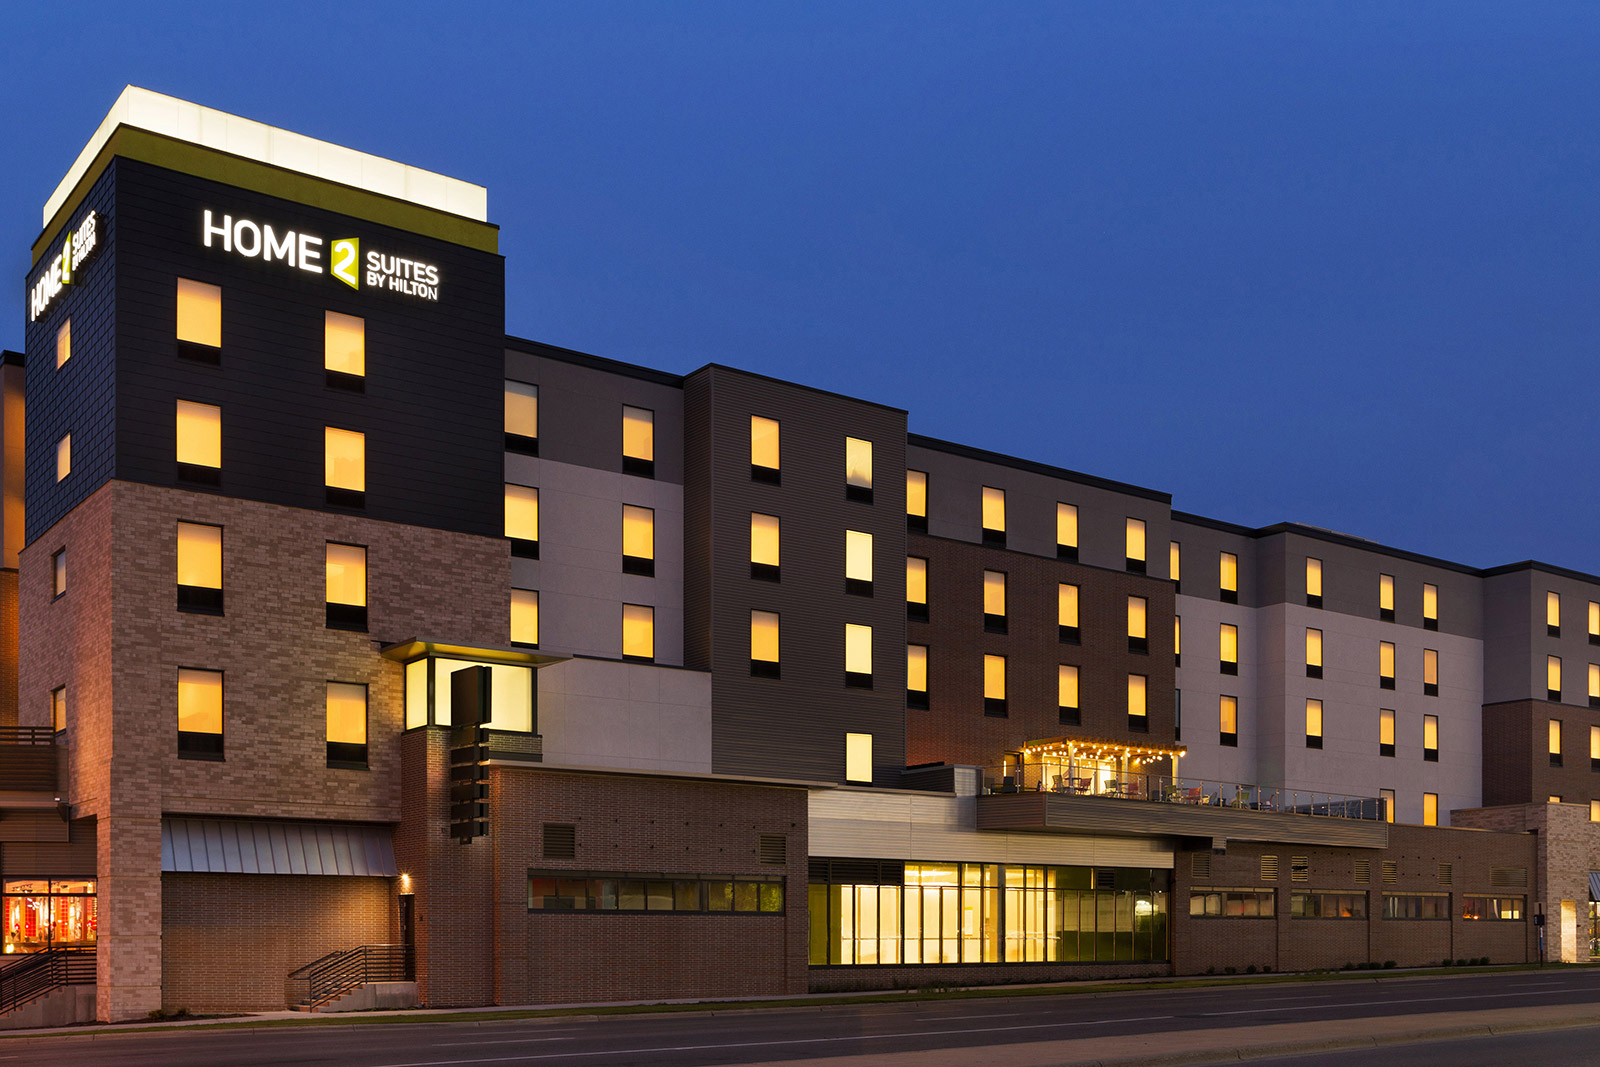 Home2 suites by hilton minneapolis hotels in bloomington mn for Homes 2